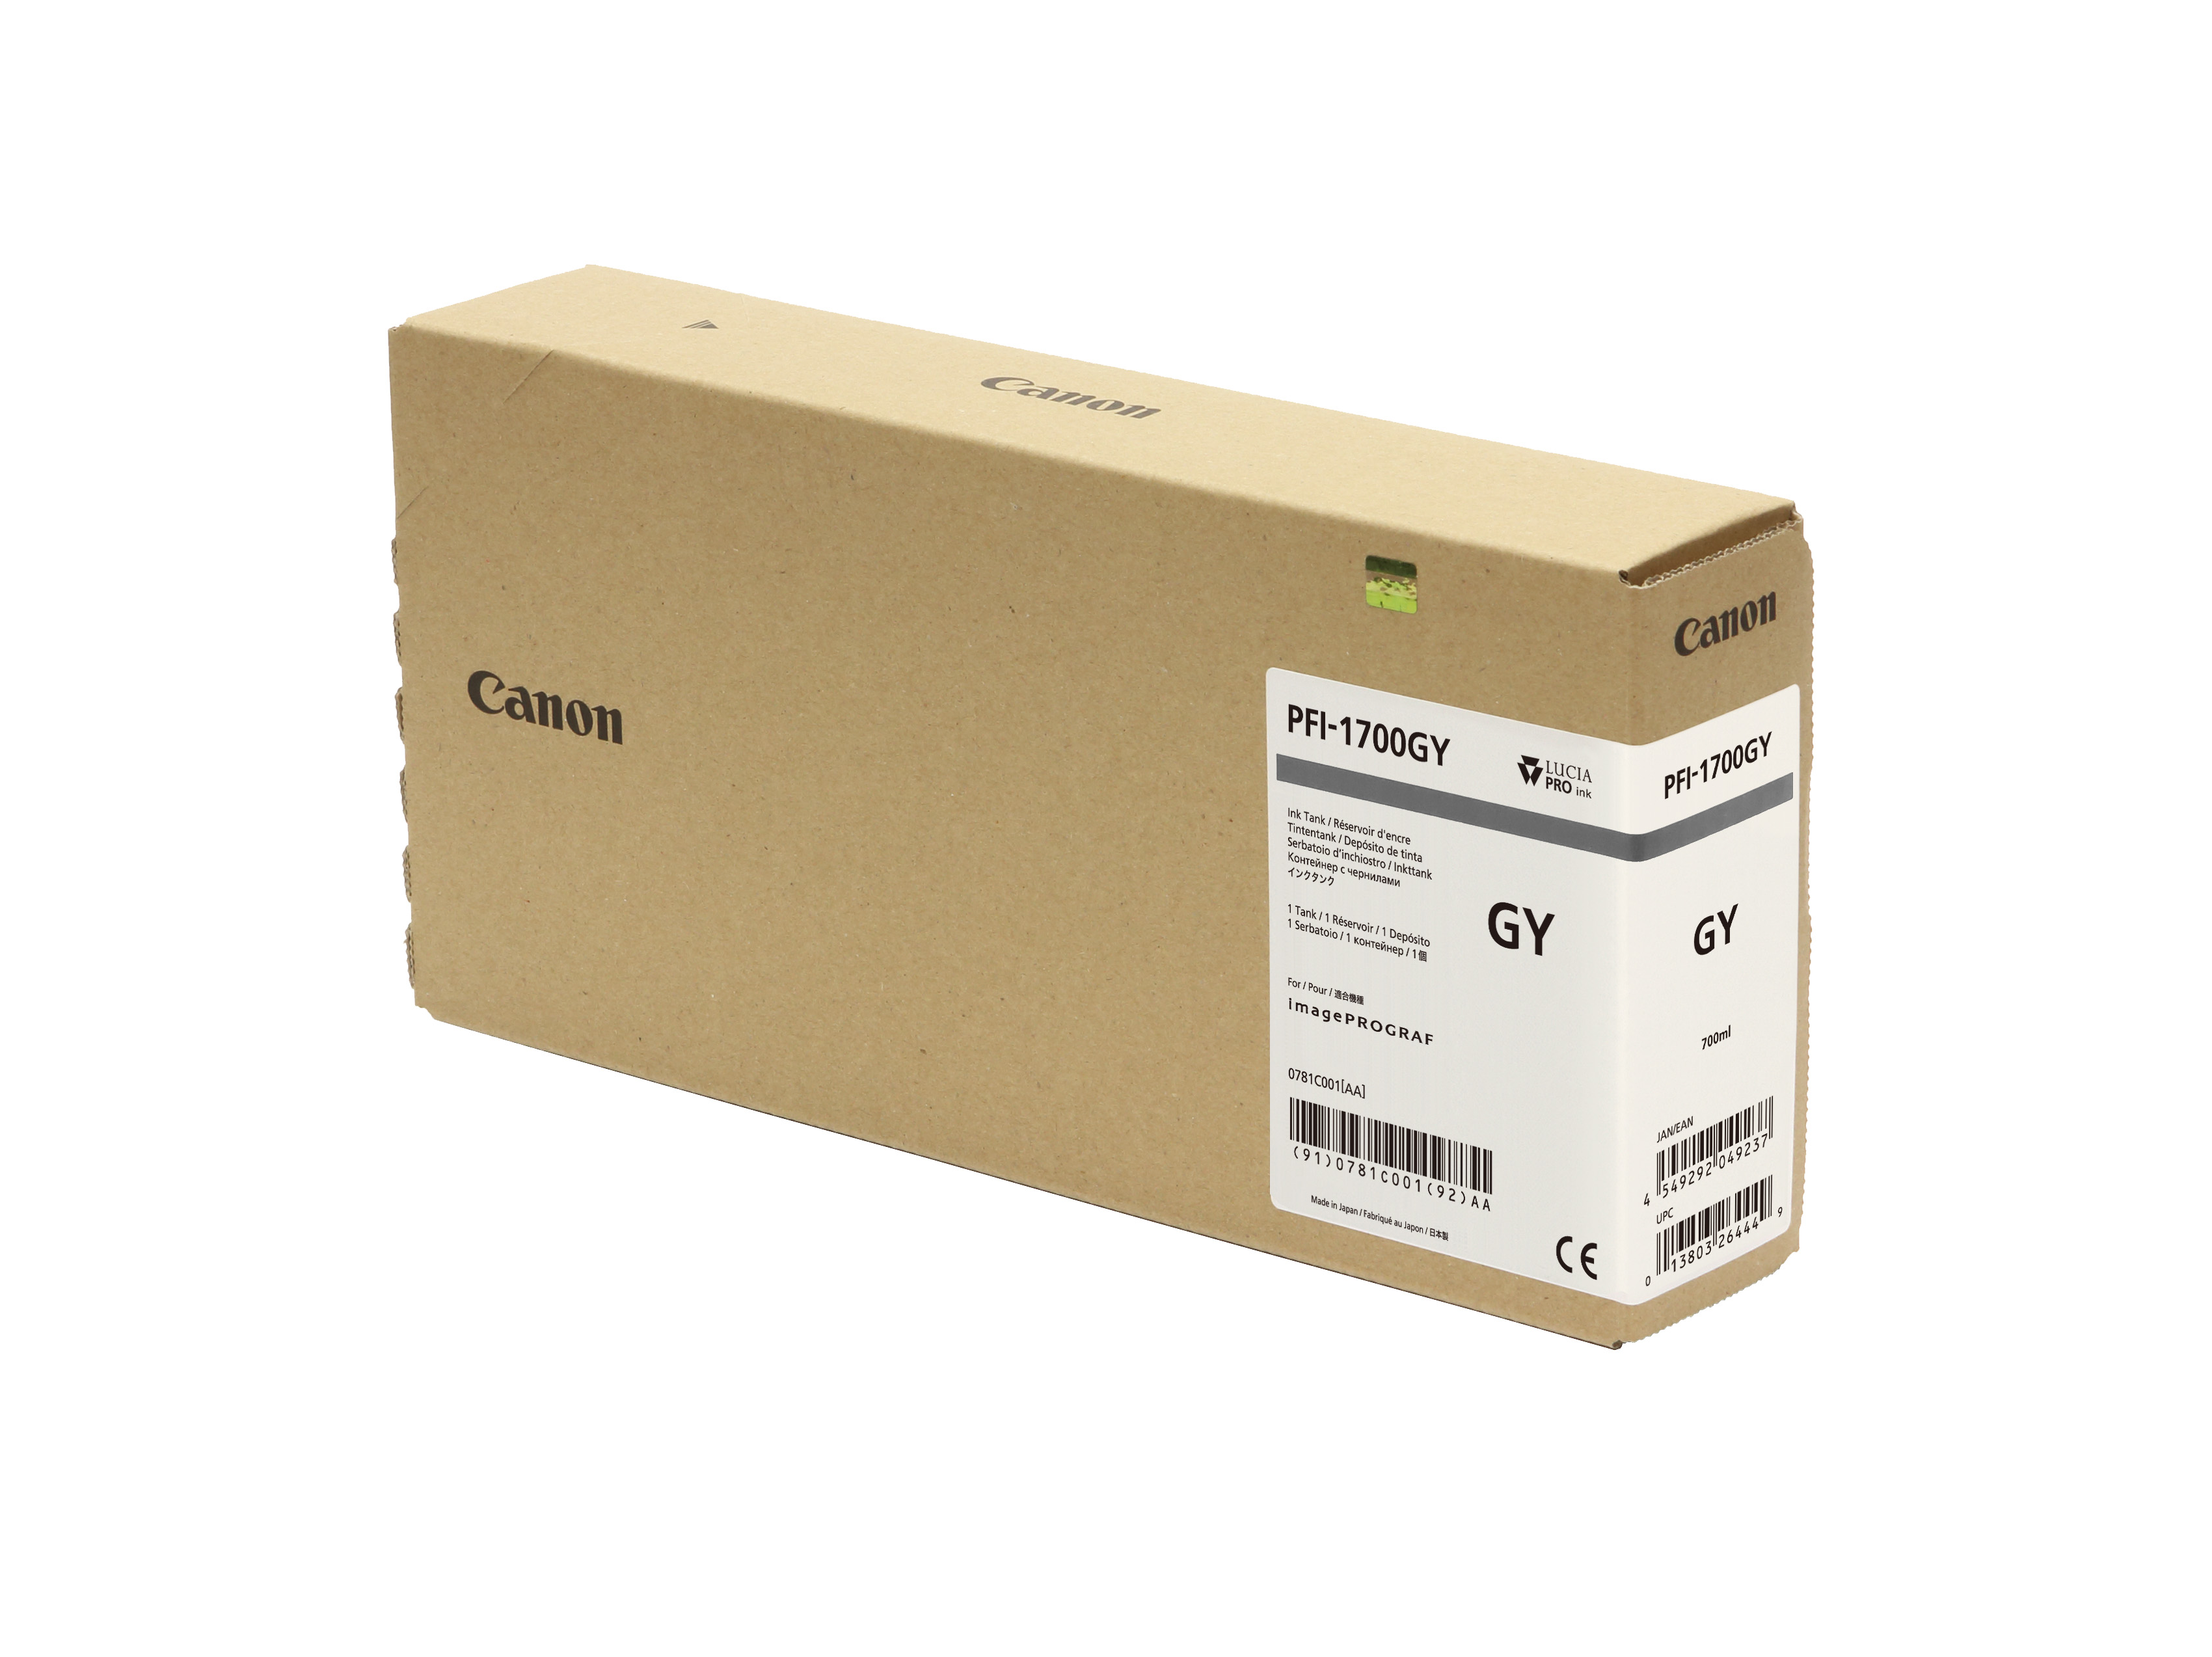 Canon PFI-1700GY Grey Ink Tank - 700ml Cartridge - for Canon PRO-2000, PRO-4000, PRO-4000S & PRO-6000S Printer - 0781C001AA - next day delivery from GDS Graphic Design Supplies Ltd